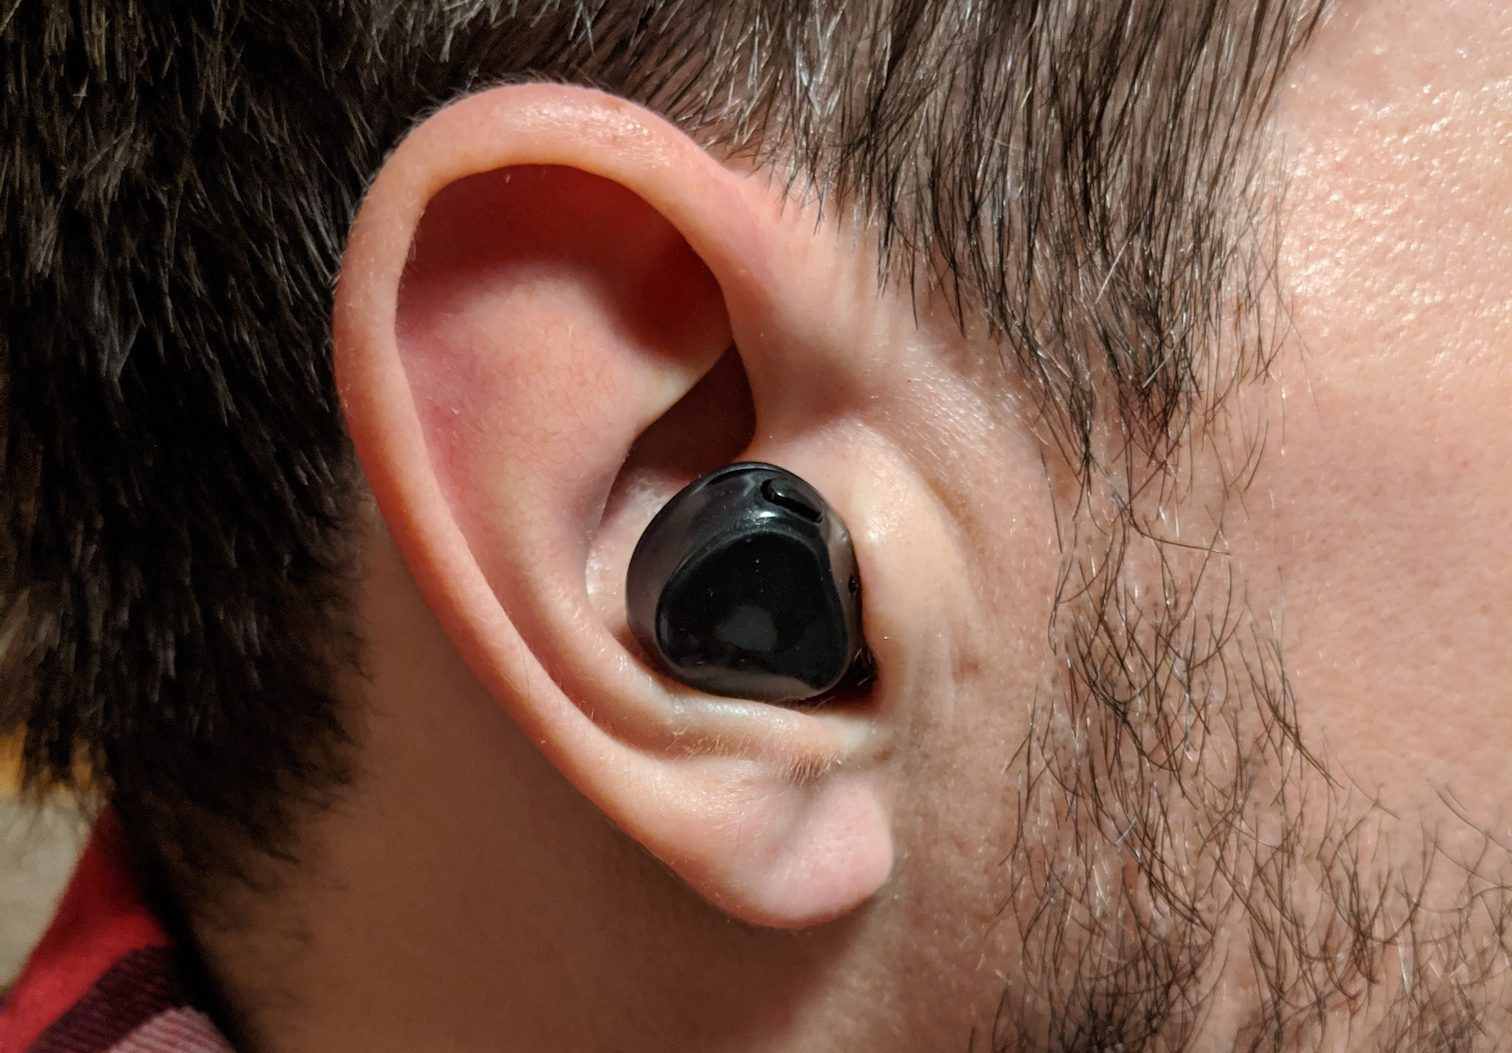 Cobble Pro fit - in ear shot